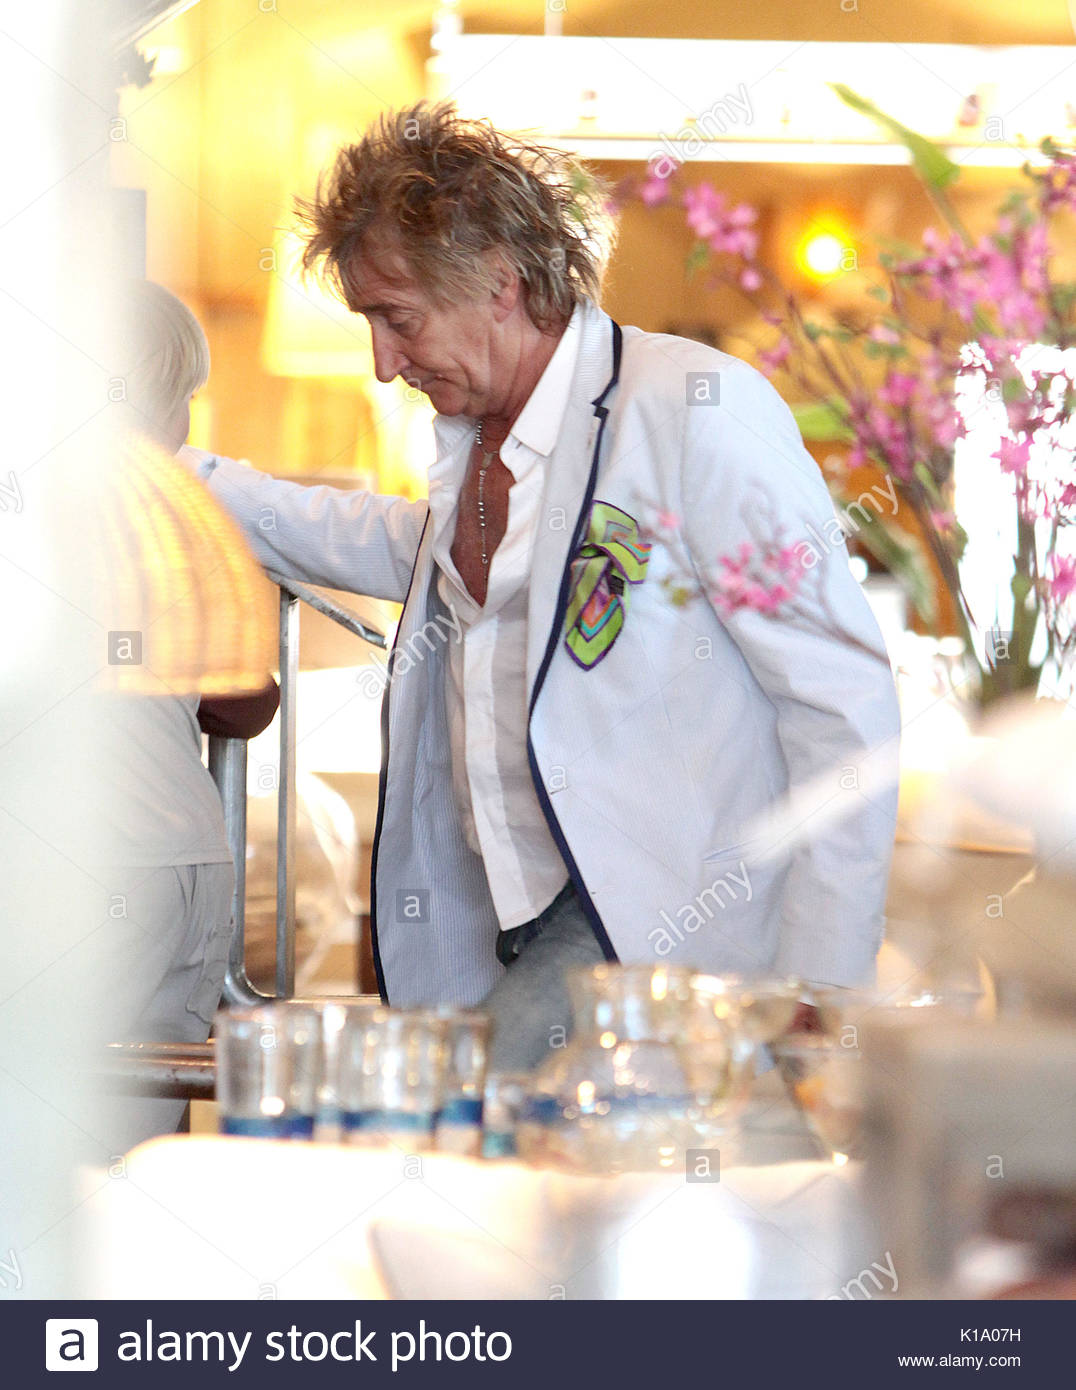 Legendary Crooner Rod Stewart Seen In Pottery Barn Furniture Store In  Beverly Hills, CA With His Wife Penny Lancaster. Rod Even Had To Make His  Way Upstairs ...